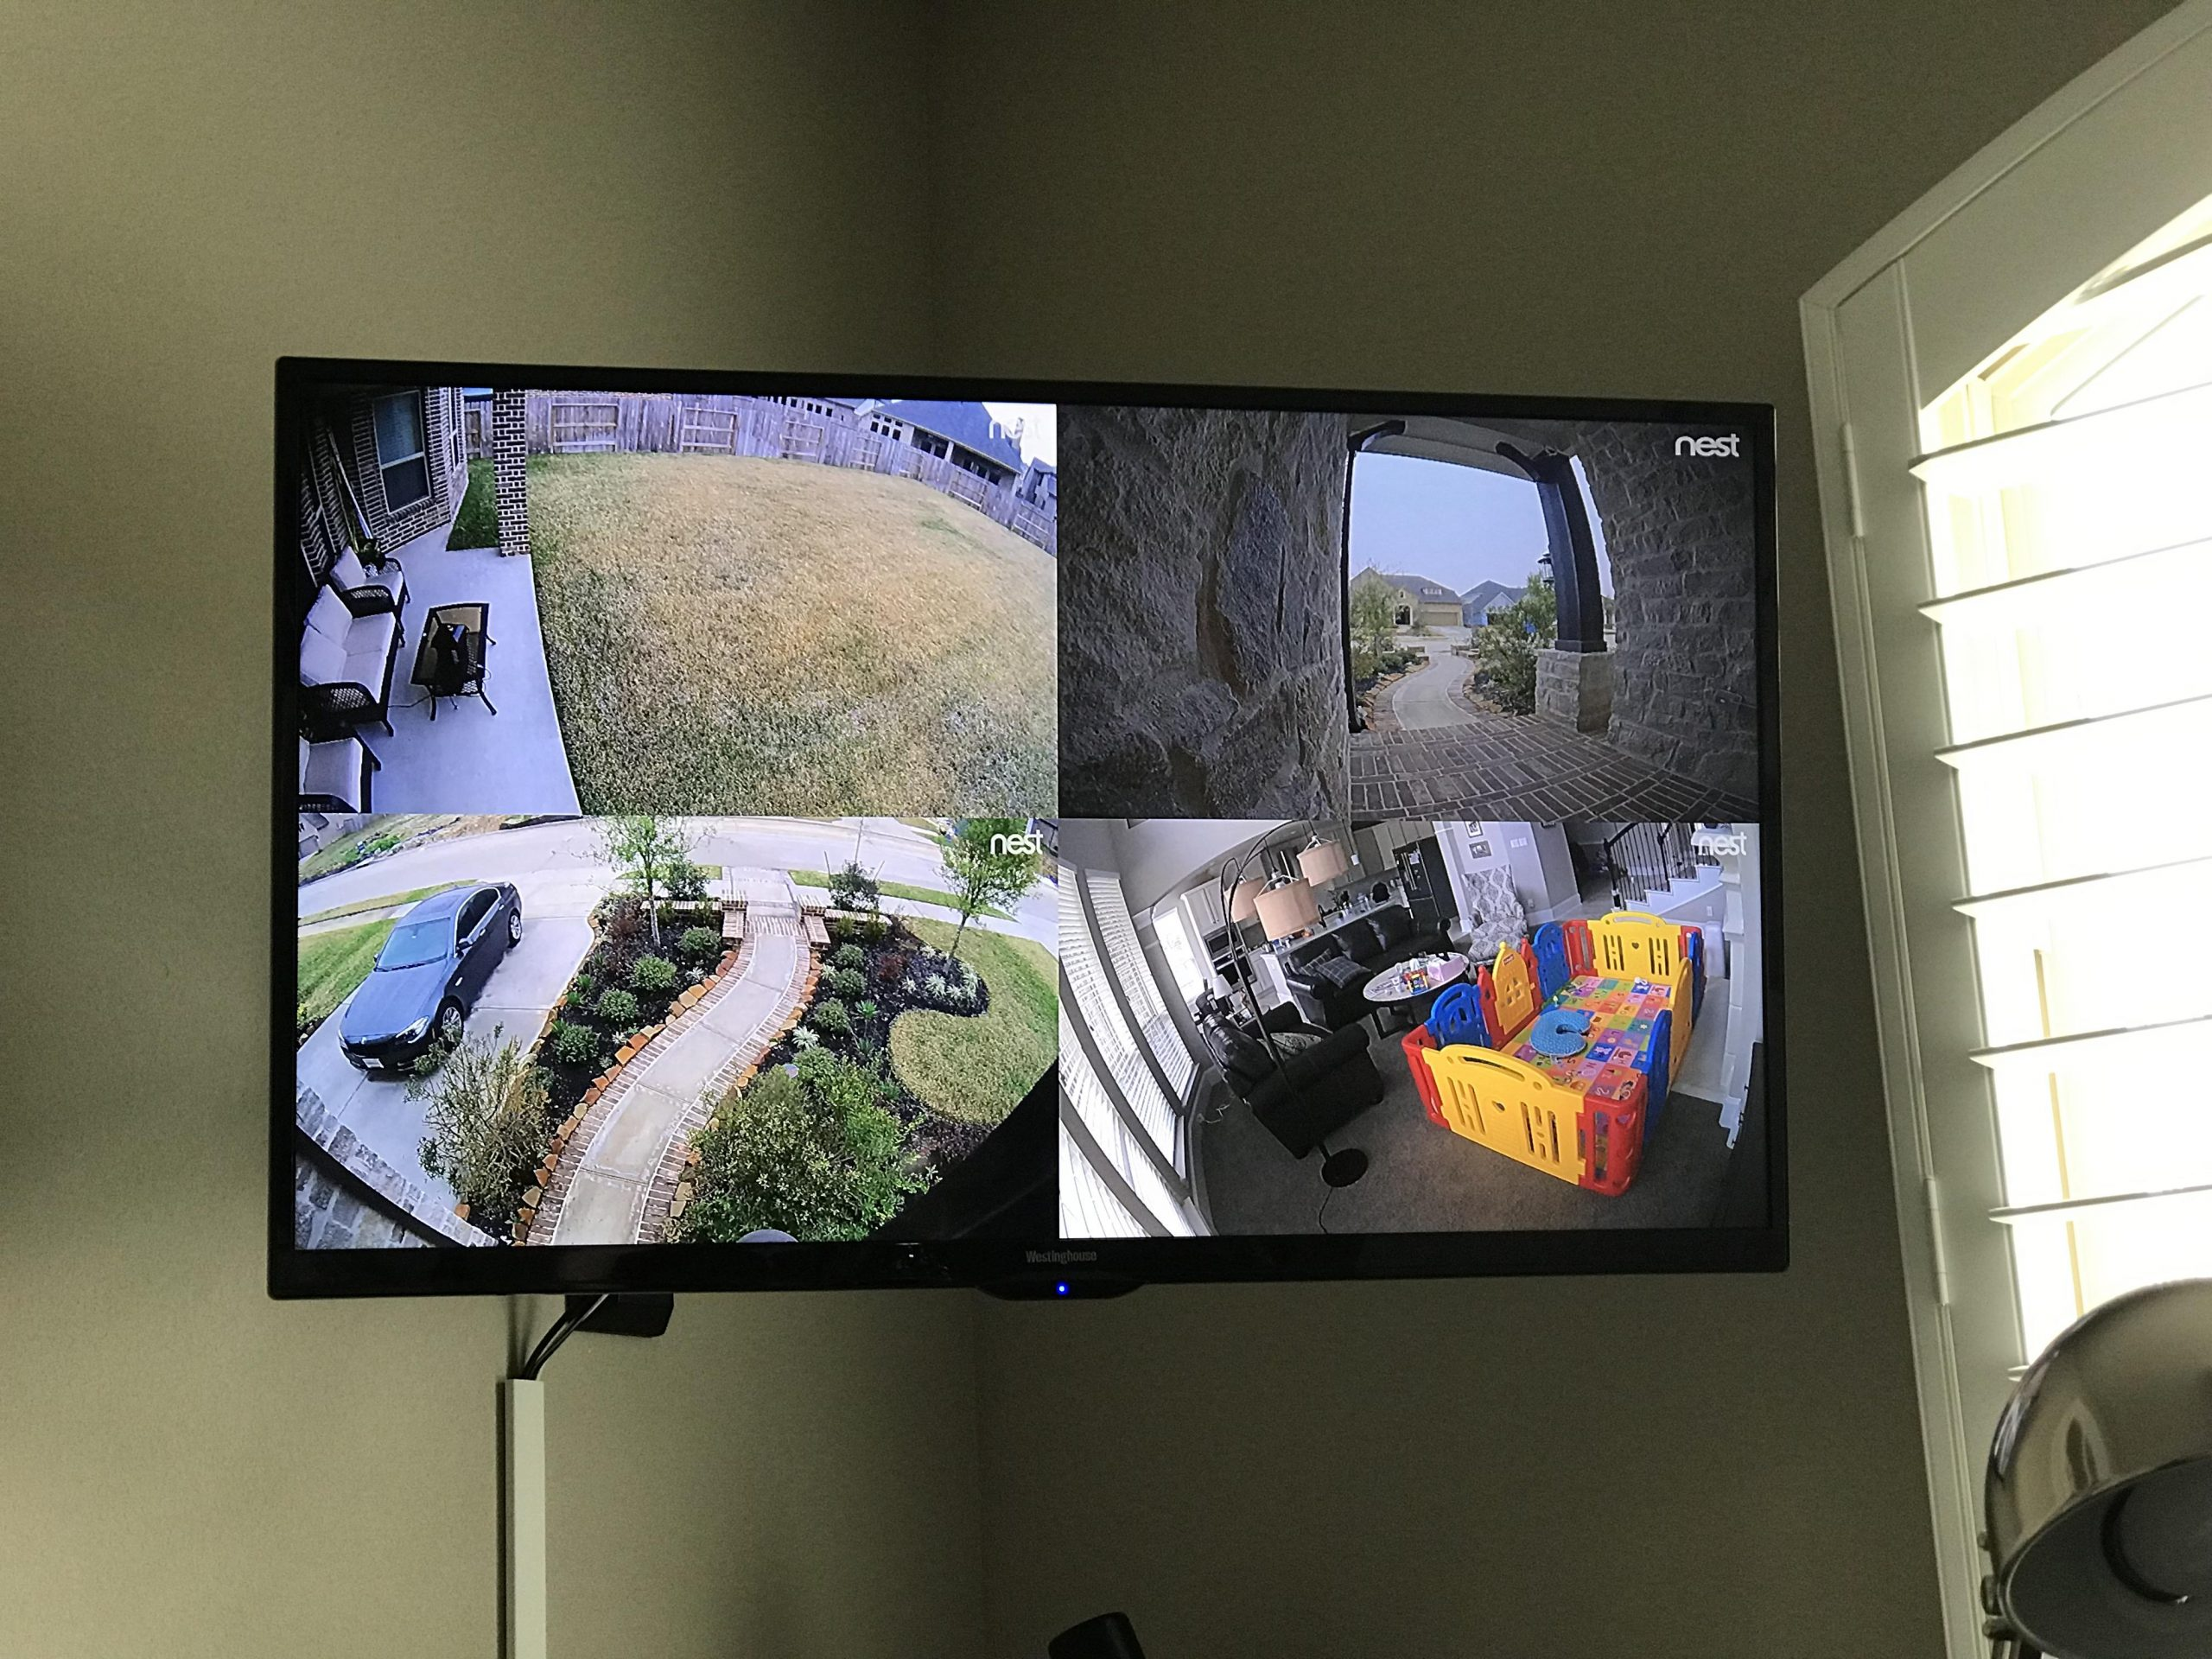 Feel More Secure with Nest Cams